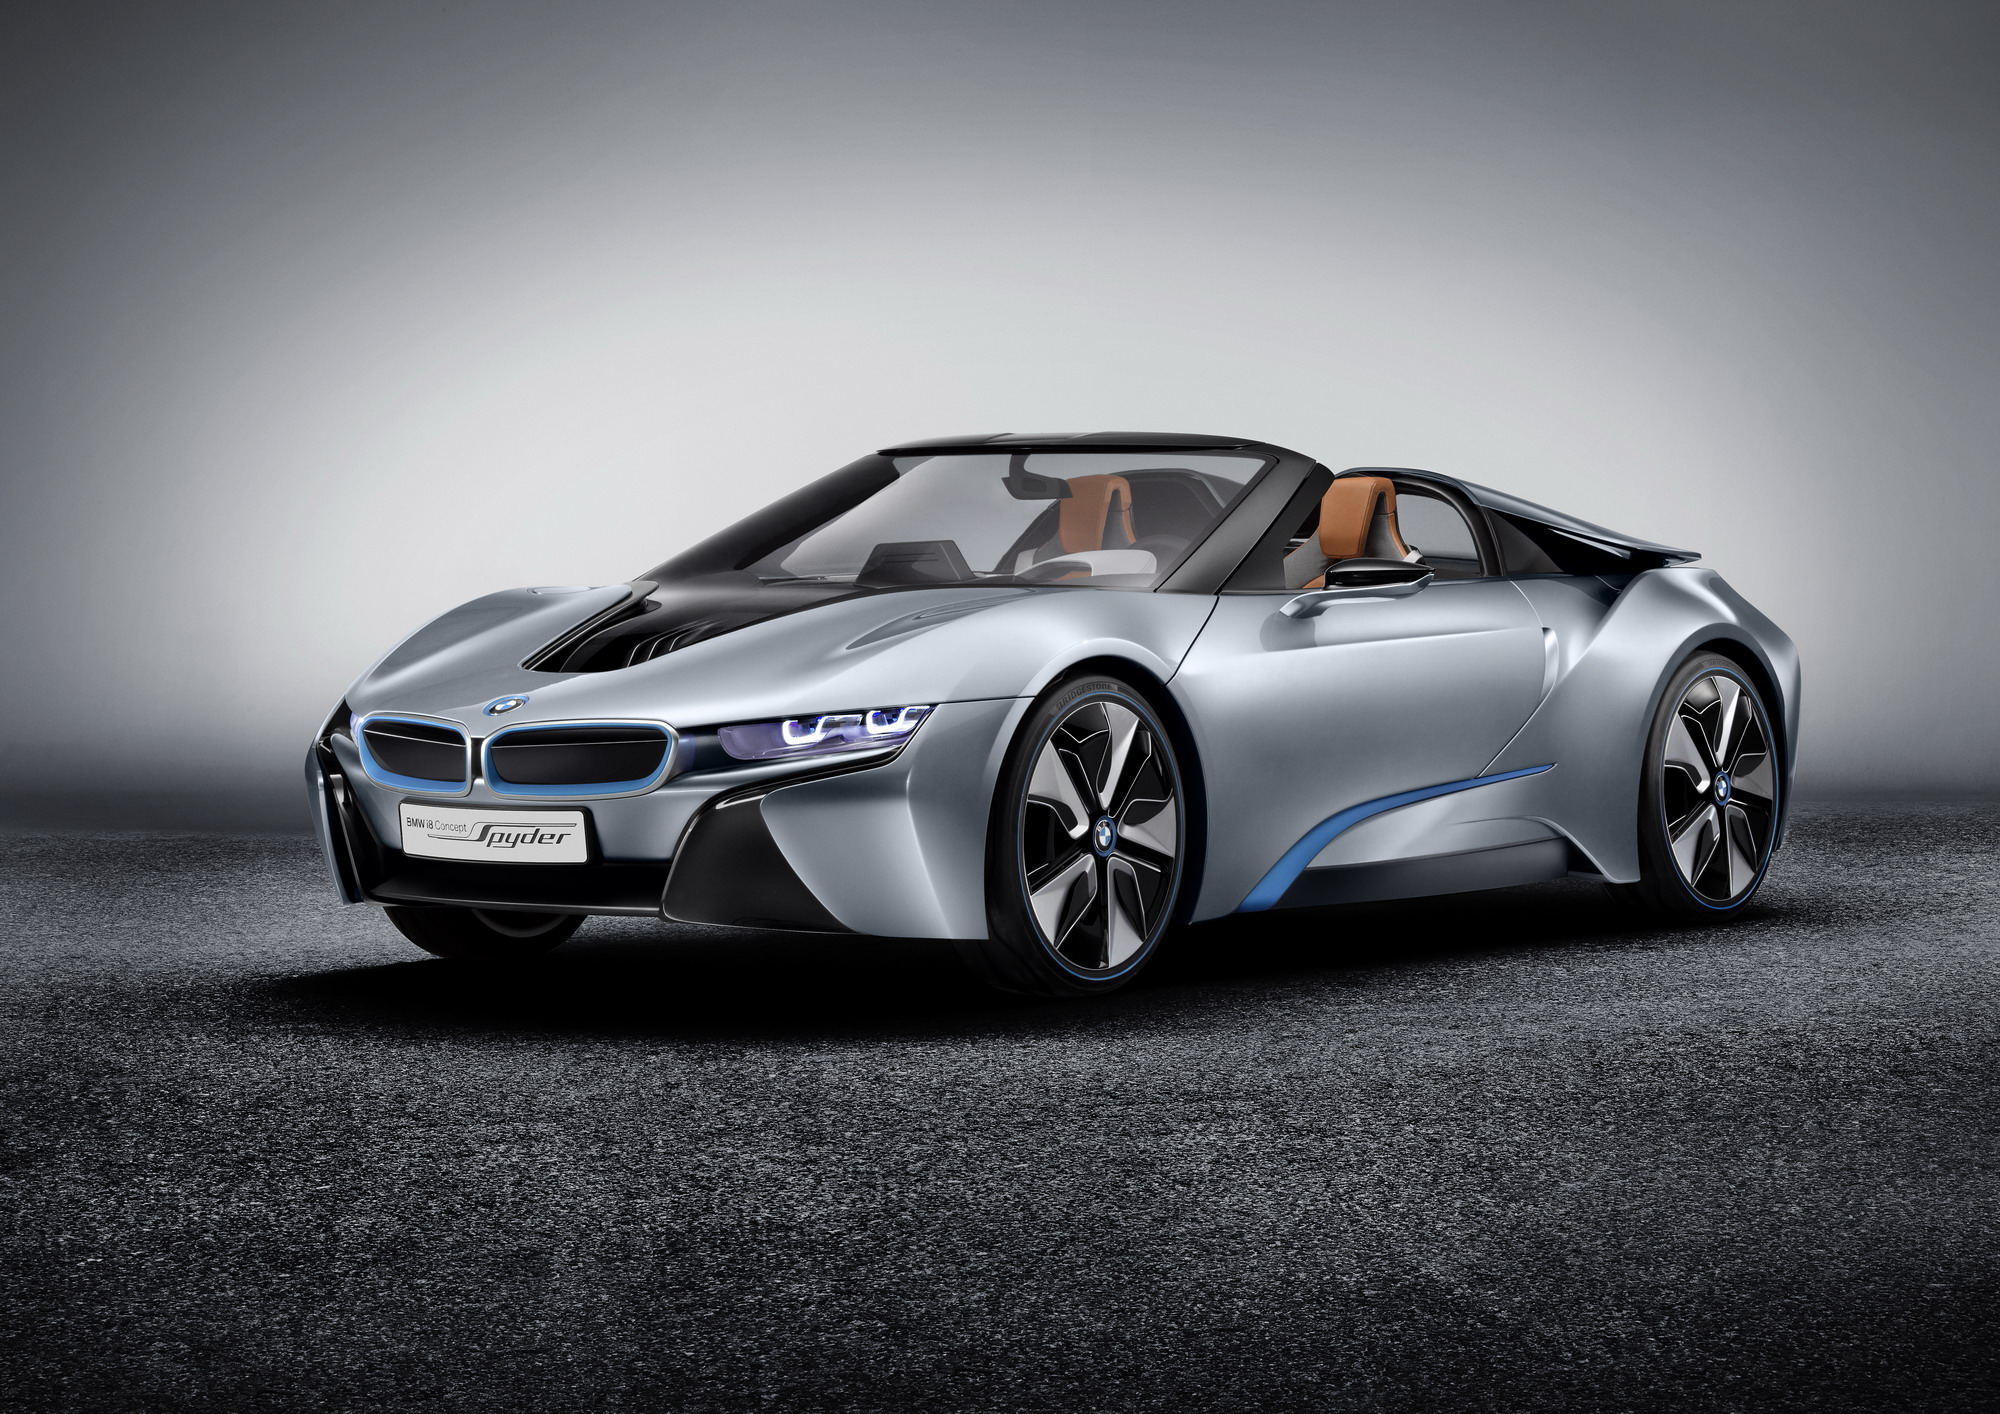 2012 Bmw I8 Concept Spyder Gallery 446319 Top Speed